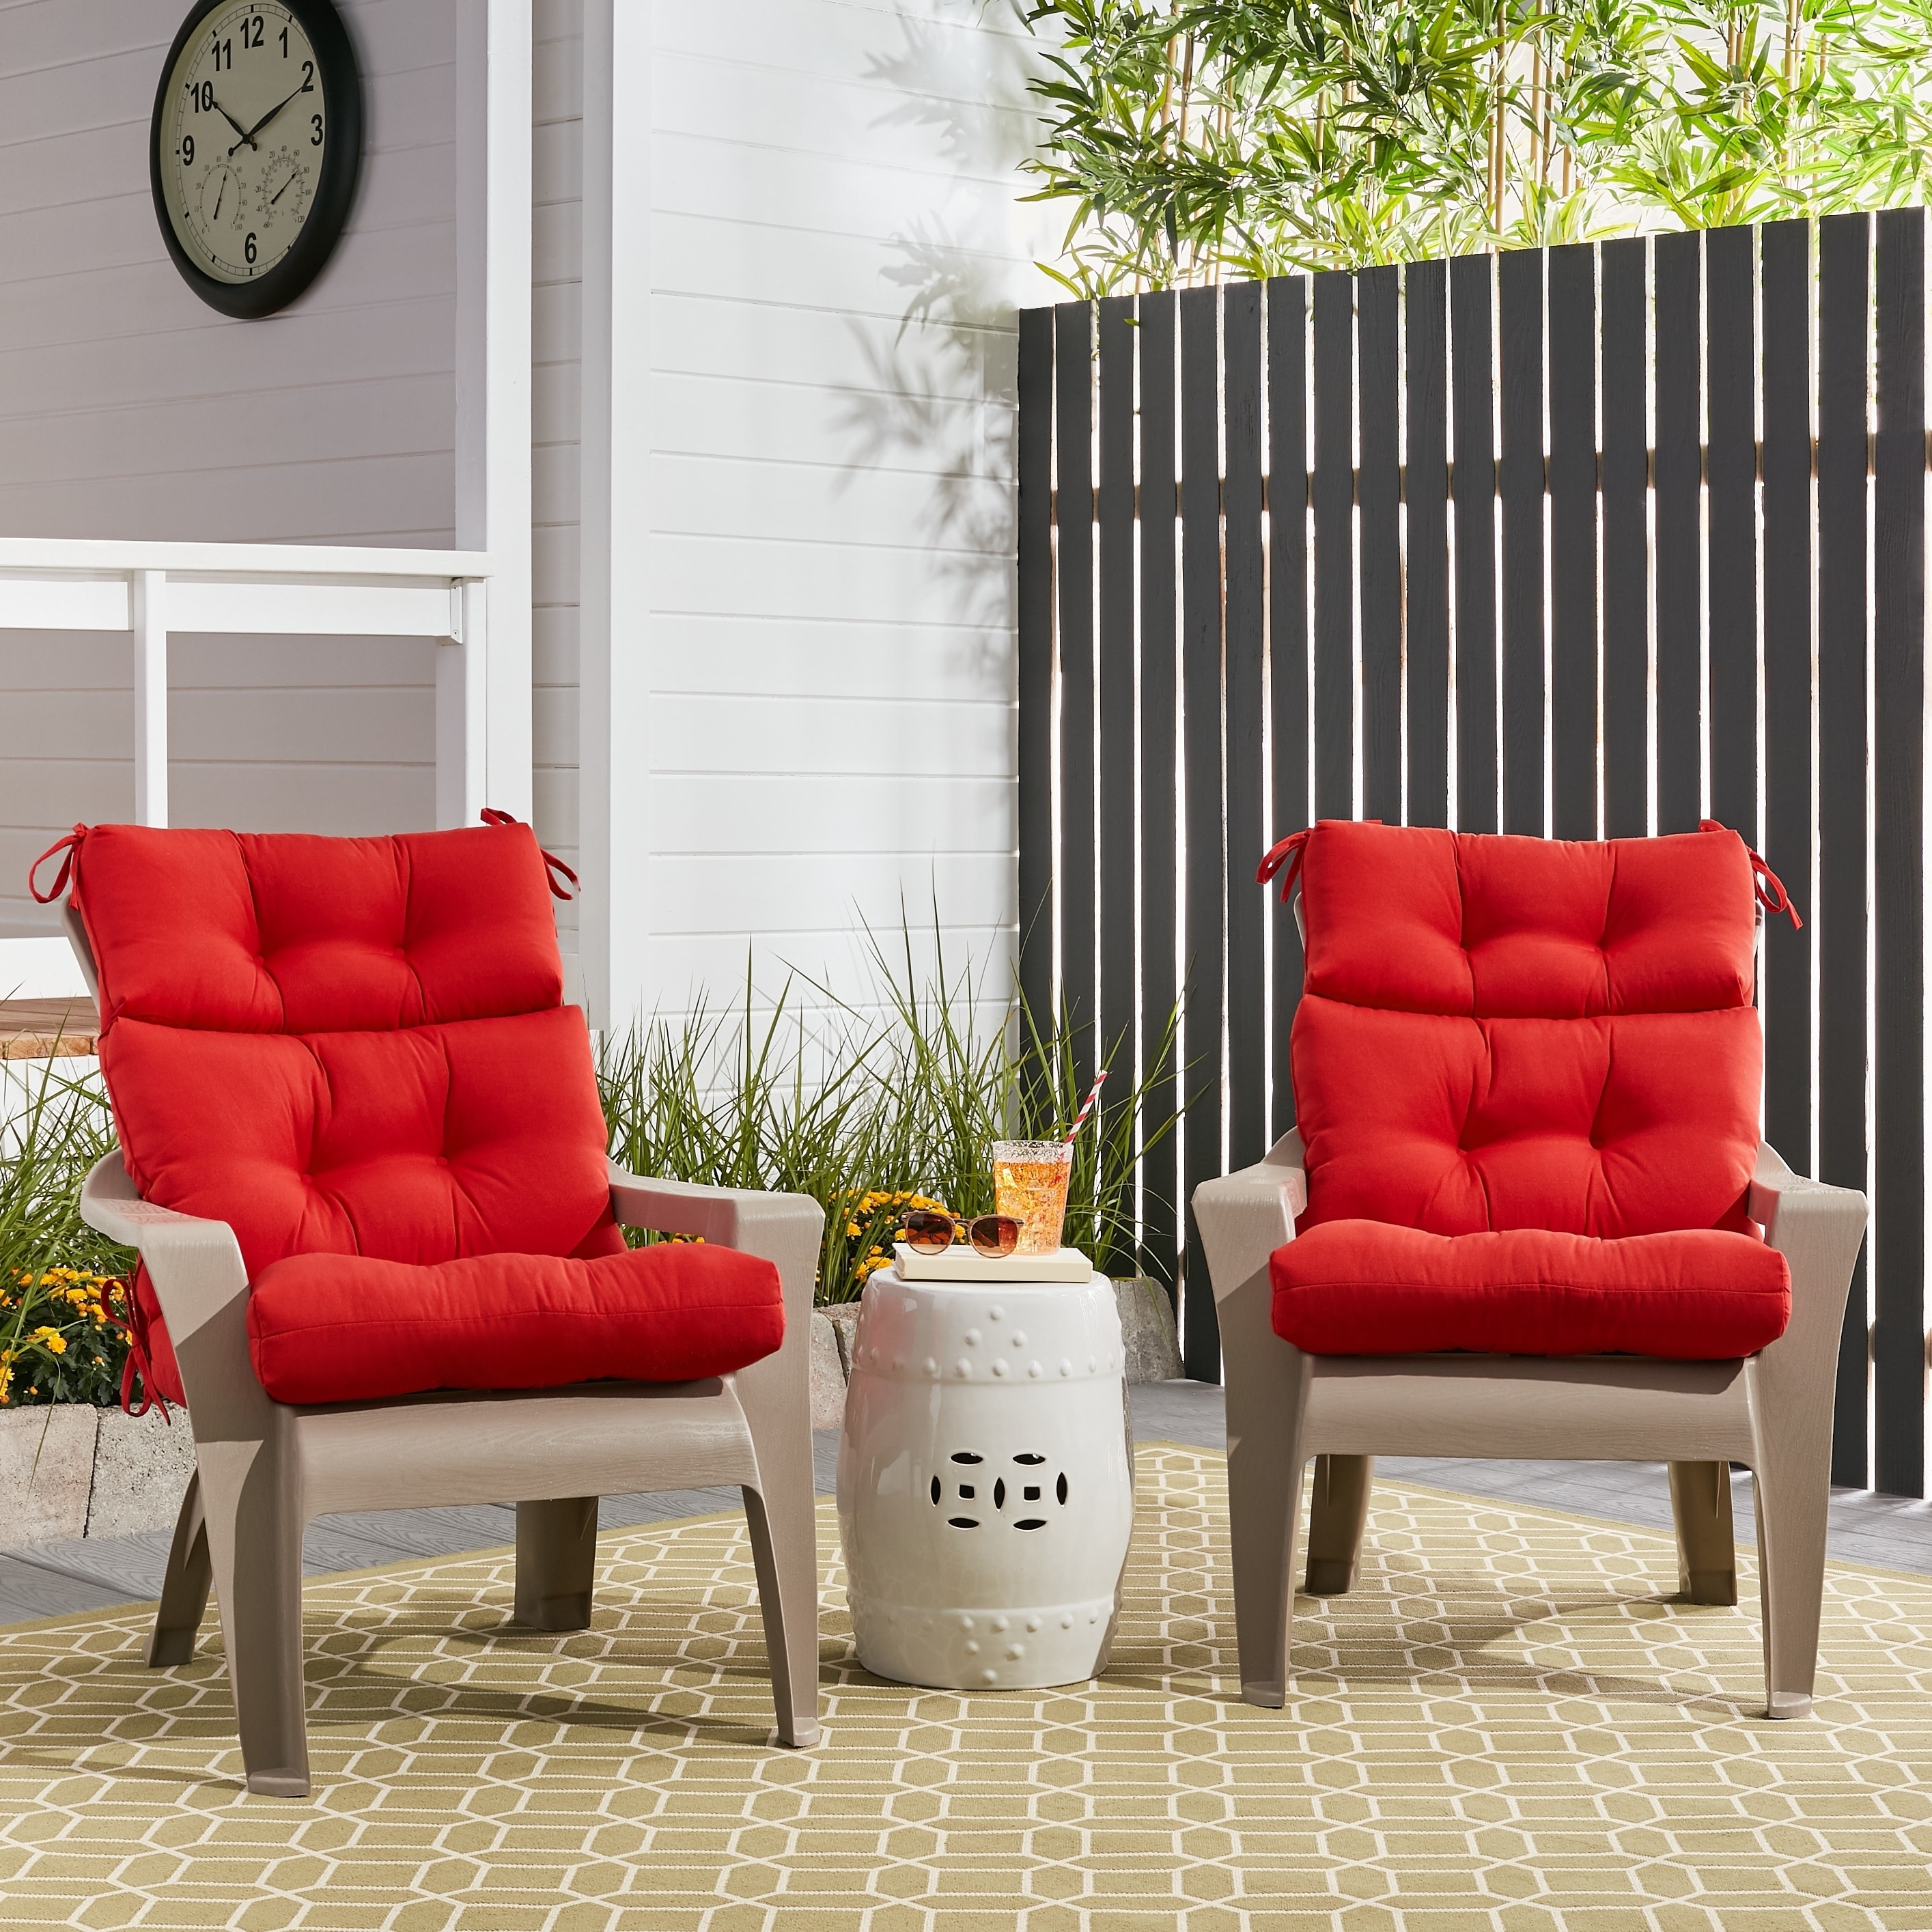 Havenside Home Driftwood Outdoor All Weather High Back Chair Cushions Set Of 2